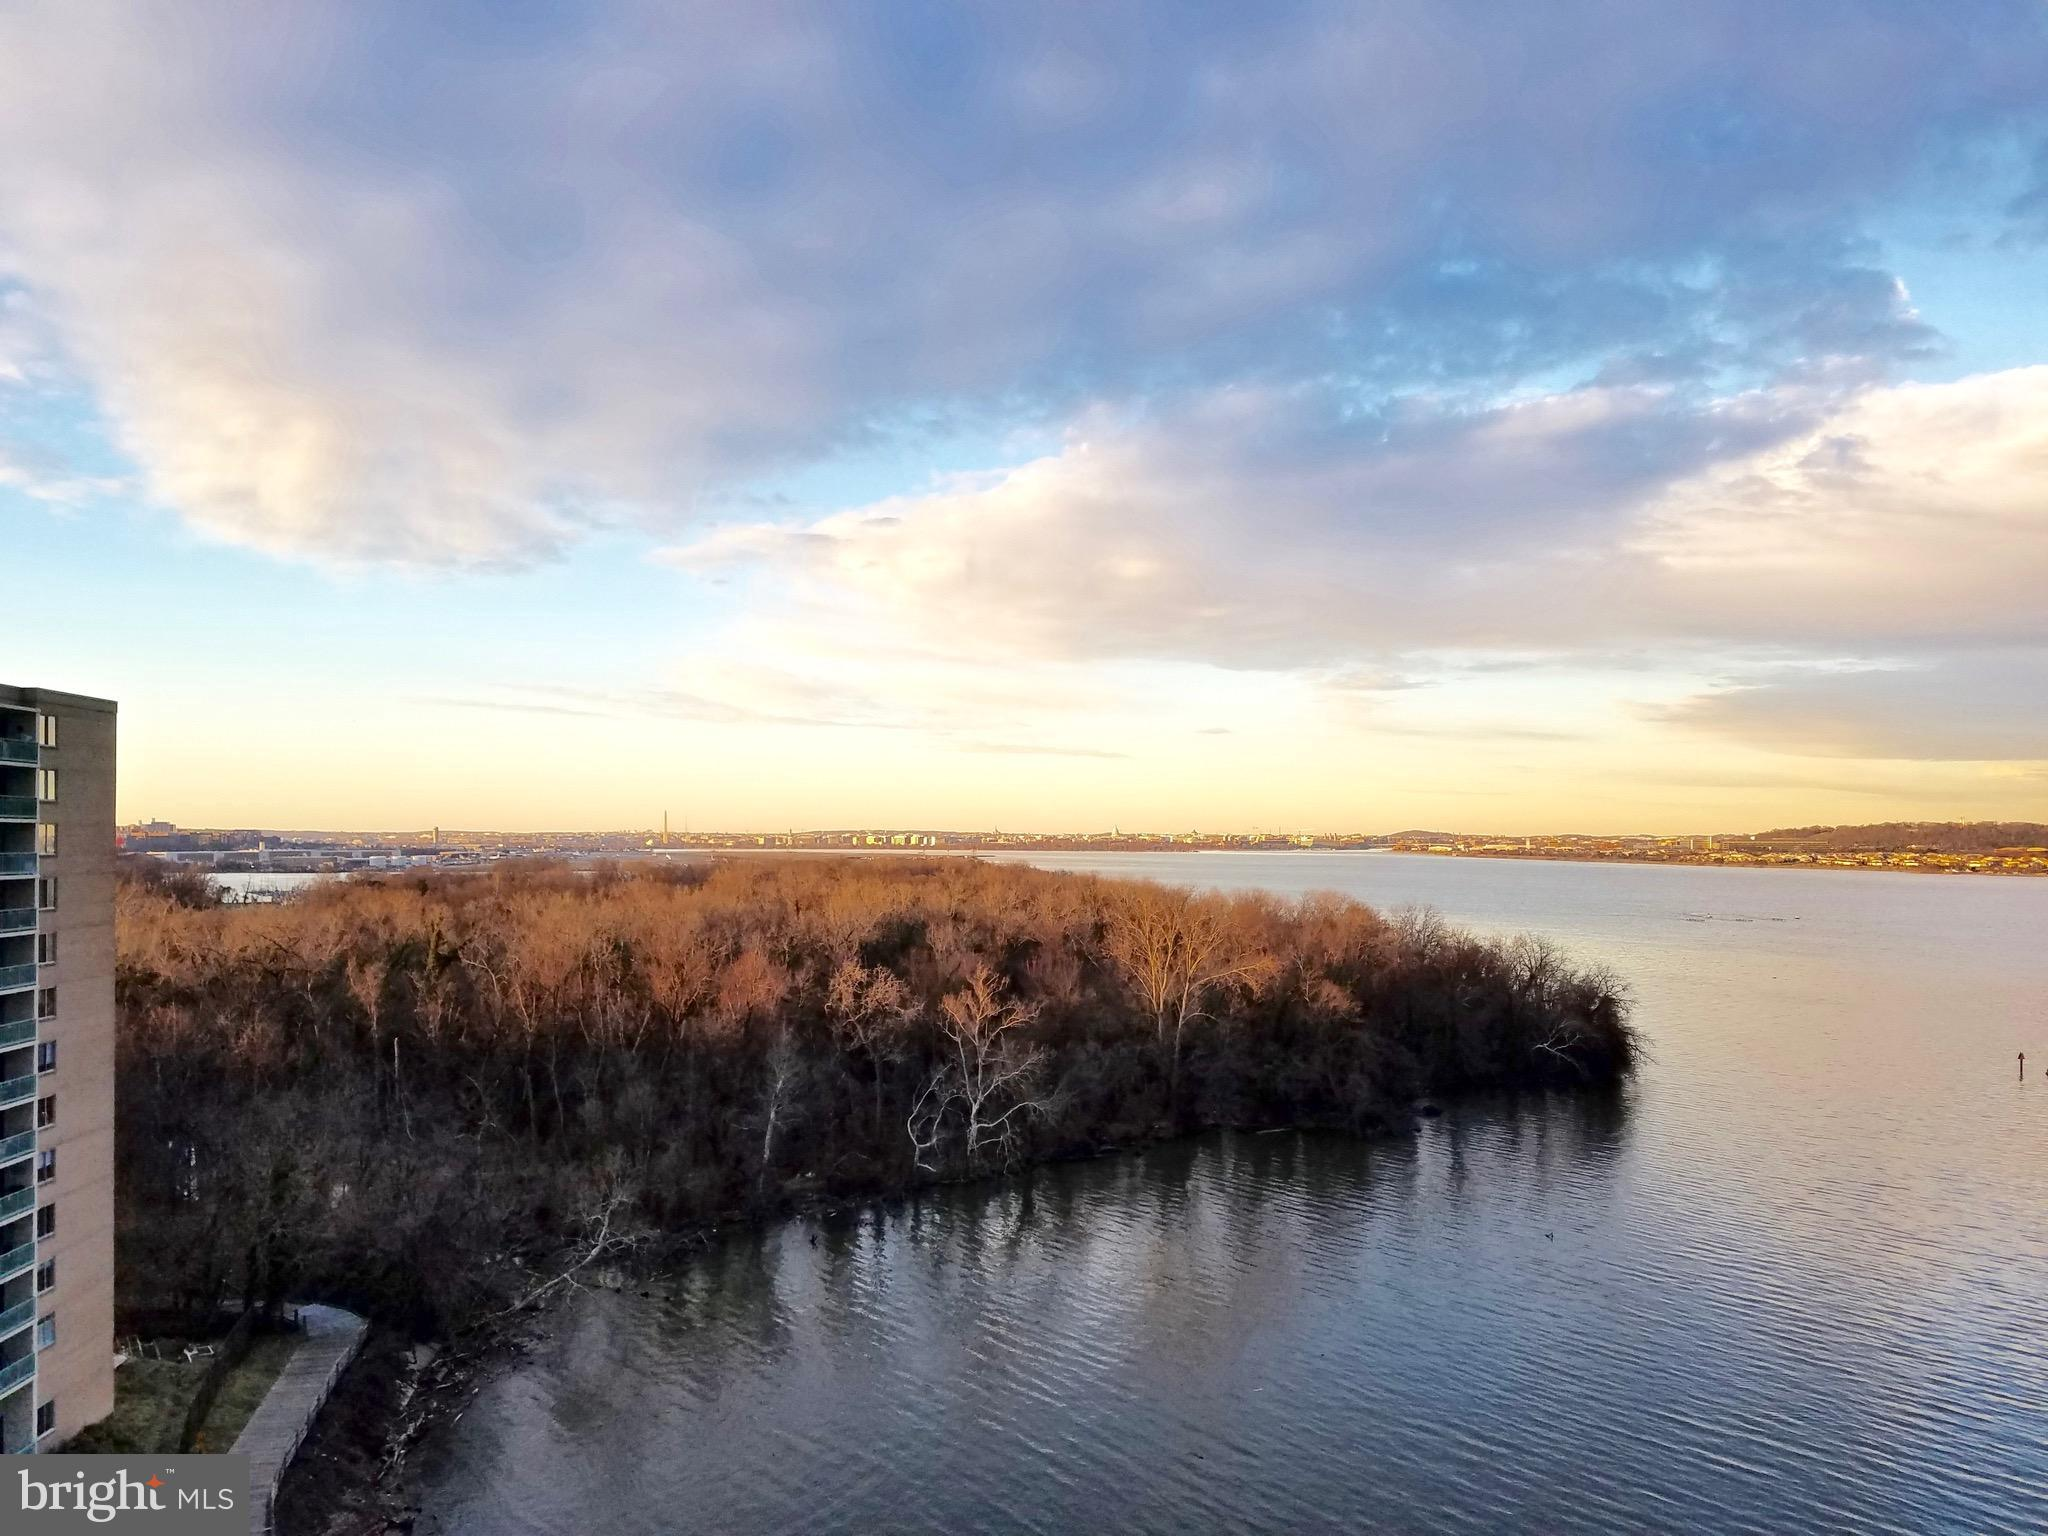 Price Reduced! Stunning views from this updated waterfront end-unit 10th floor condo featuring a completely updated kitchen, hrdwd flrs throughout, updated windows, custom built-ins & commanding views of the Potomac River & all of the monumuents of the DC skyline. All utilities incl. in condo fee. 2 BR, 2 full baths & 1,168 sq.ft. of incredible waterfront living space. Parking incl until 7/29/2019